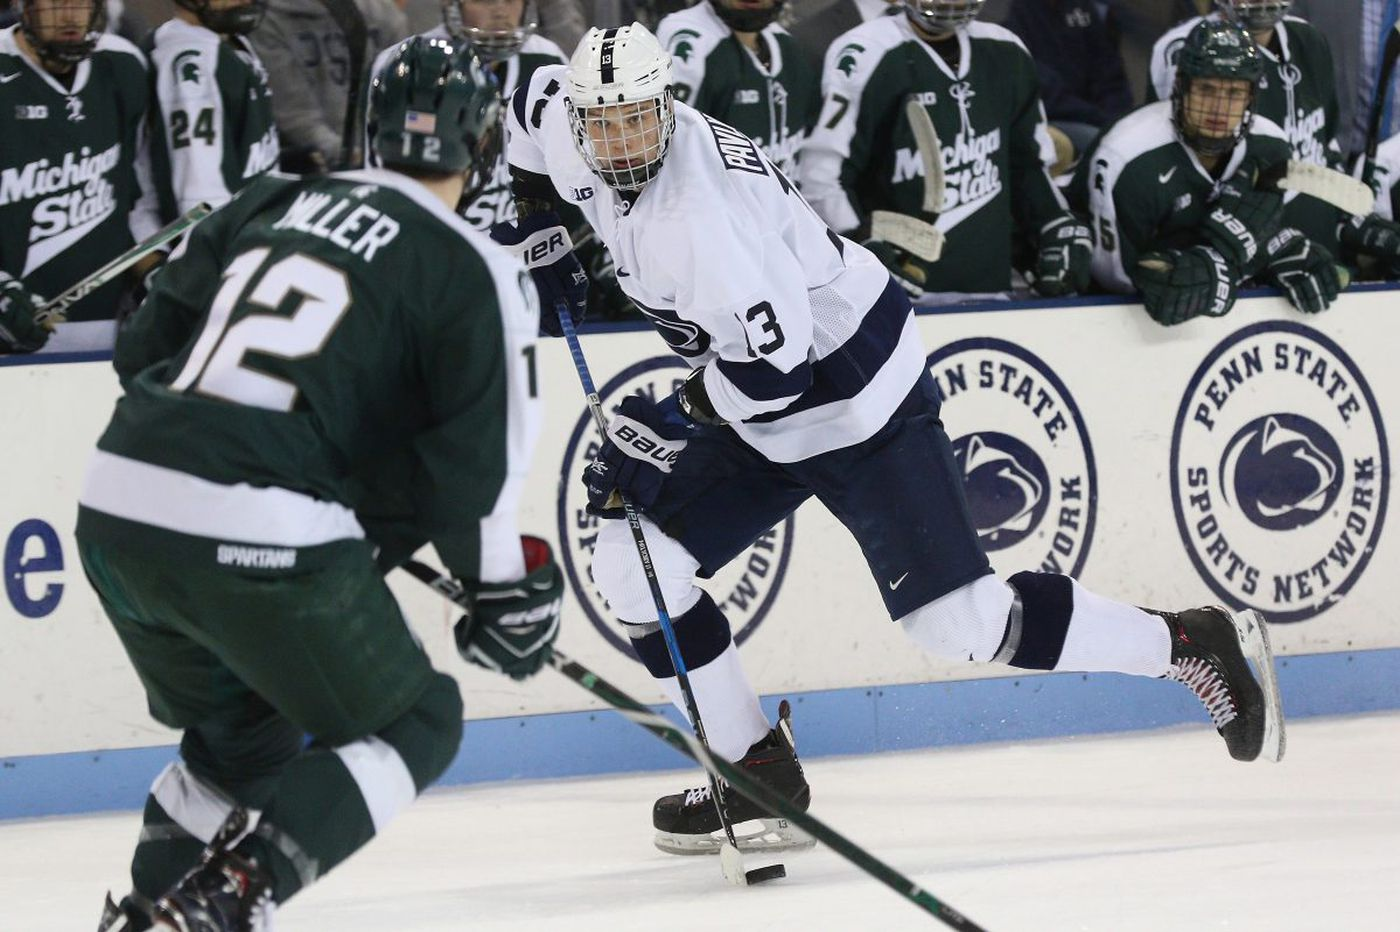 Penn State eliminated by Denver in NCAA hockey tournament